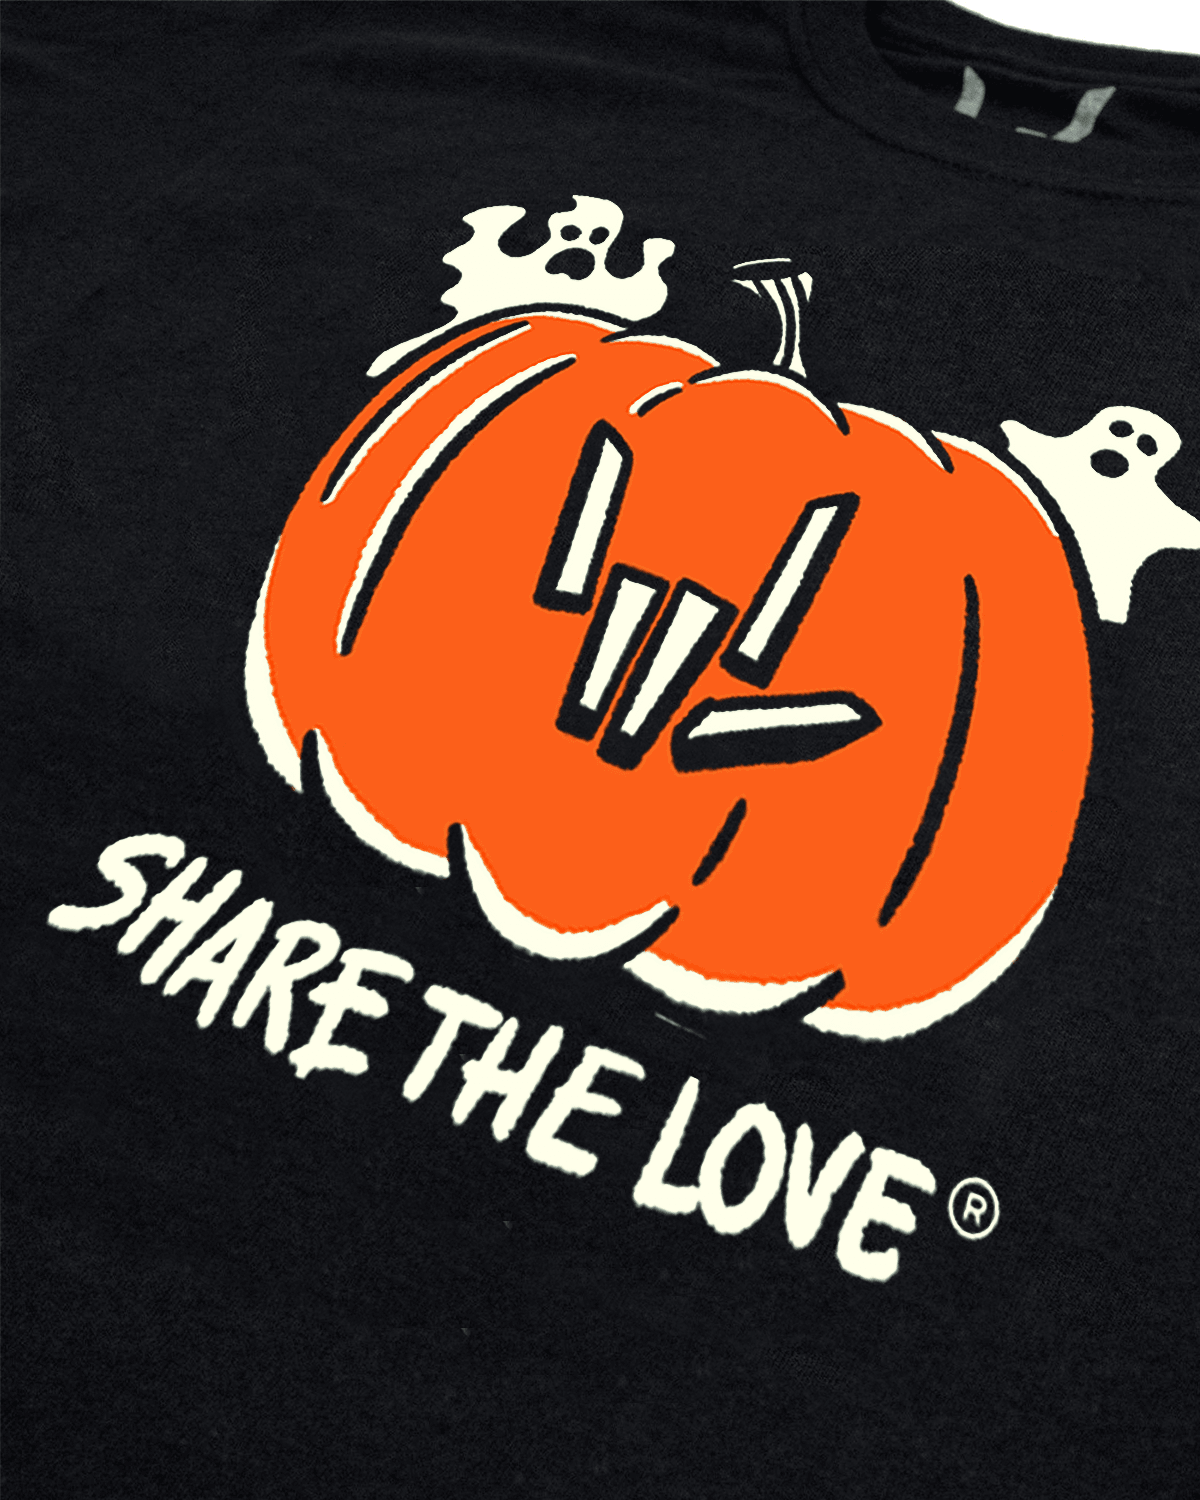 'Share The Love' Glow In The Dark Youth Tee - Limited Edition